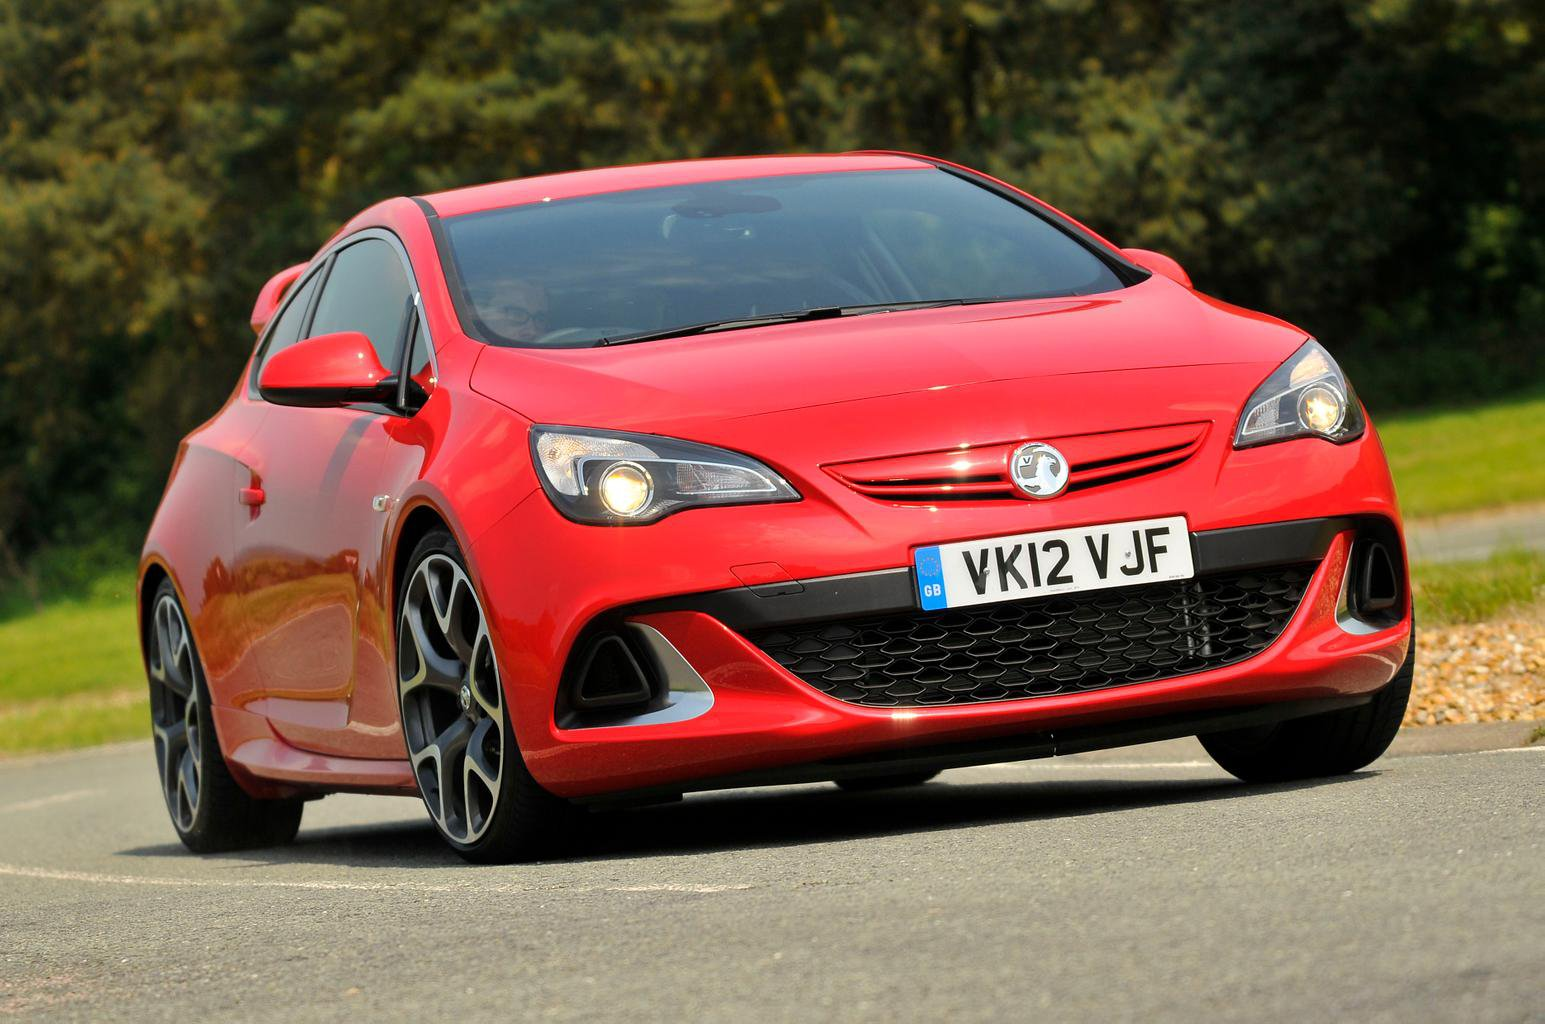 Used test – hot hatches: Renault Sport Megane vs Vauxhall Astra VXR